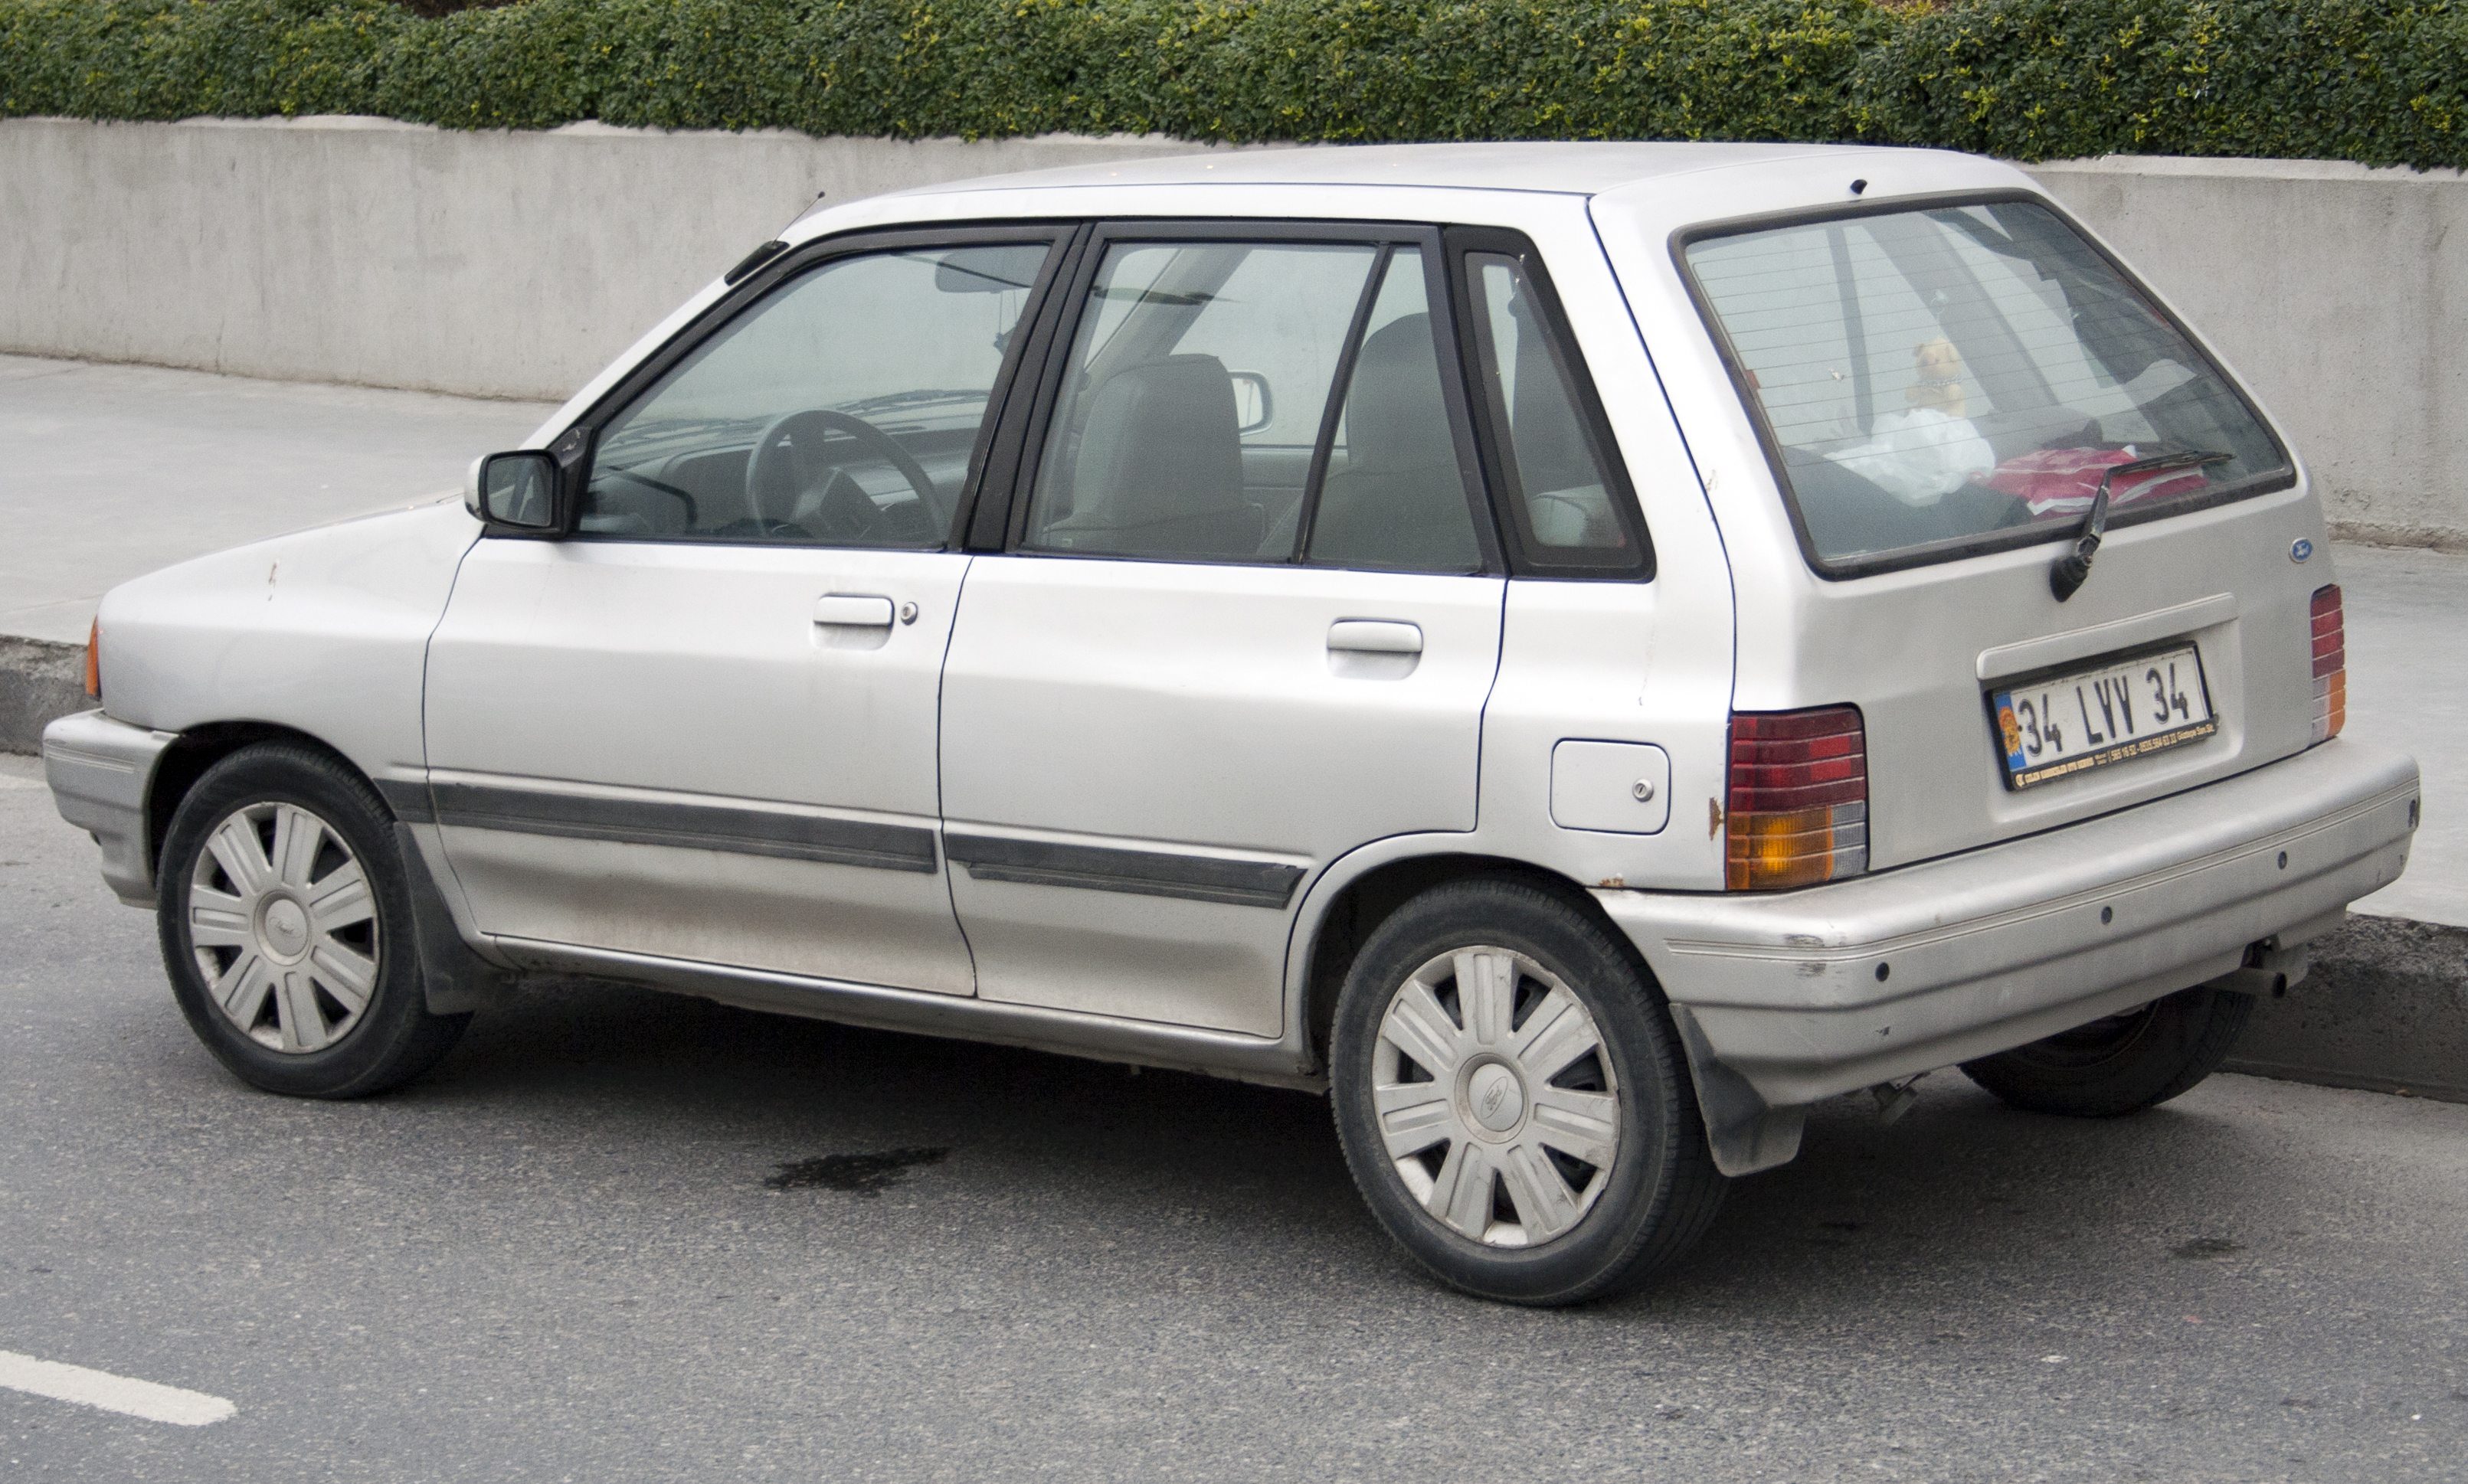 FileFord Festiva 5dr Rear TR